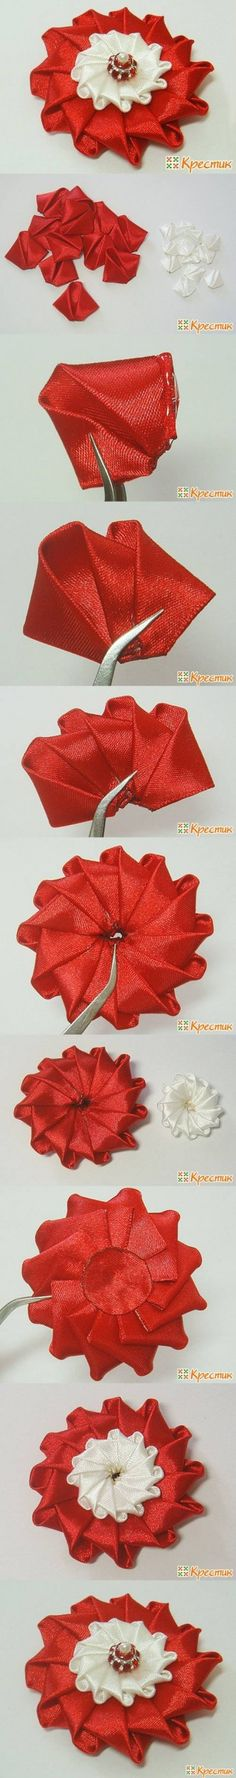 DIY Bright Satin Ribbon Flower DIY Projects